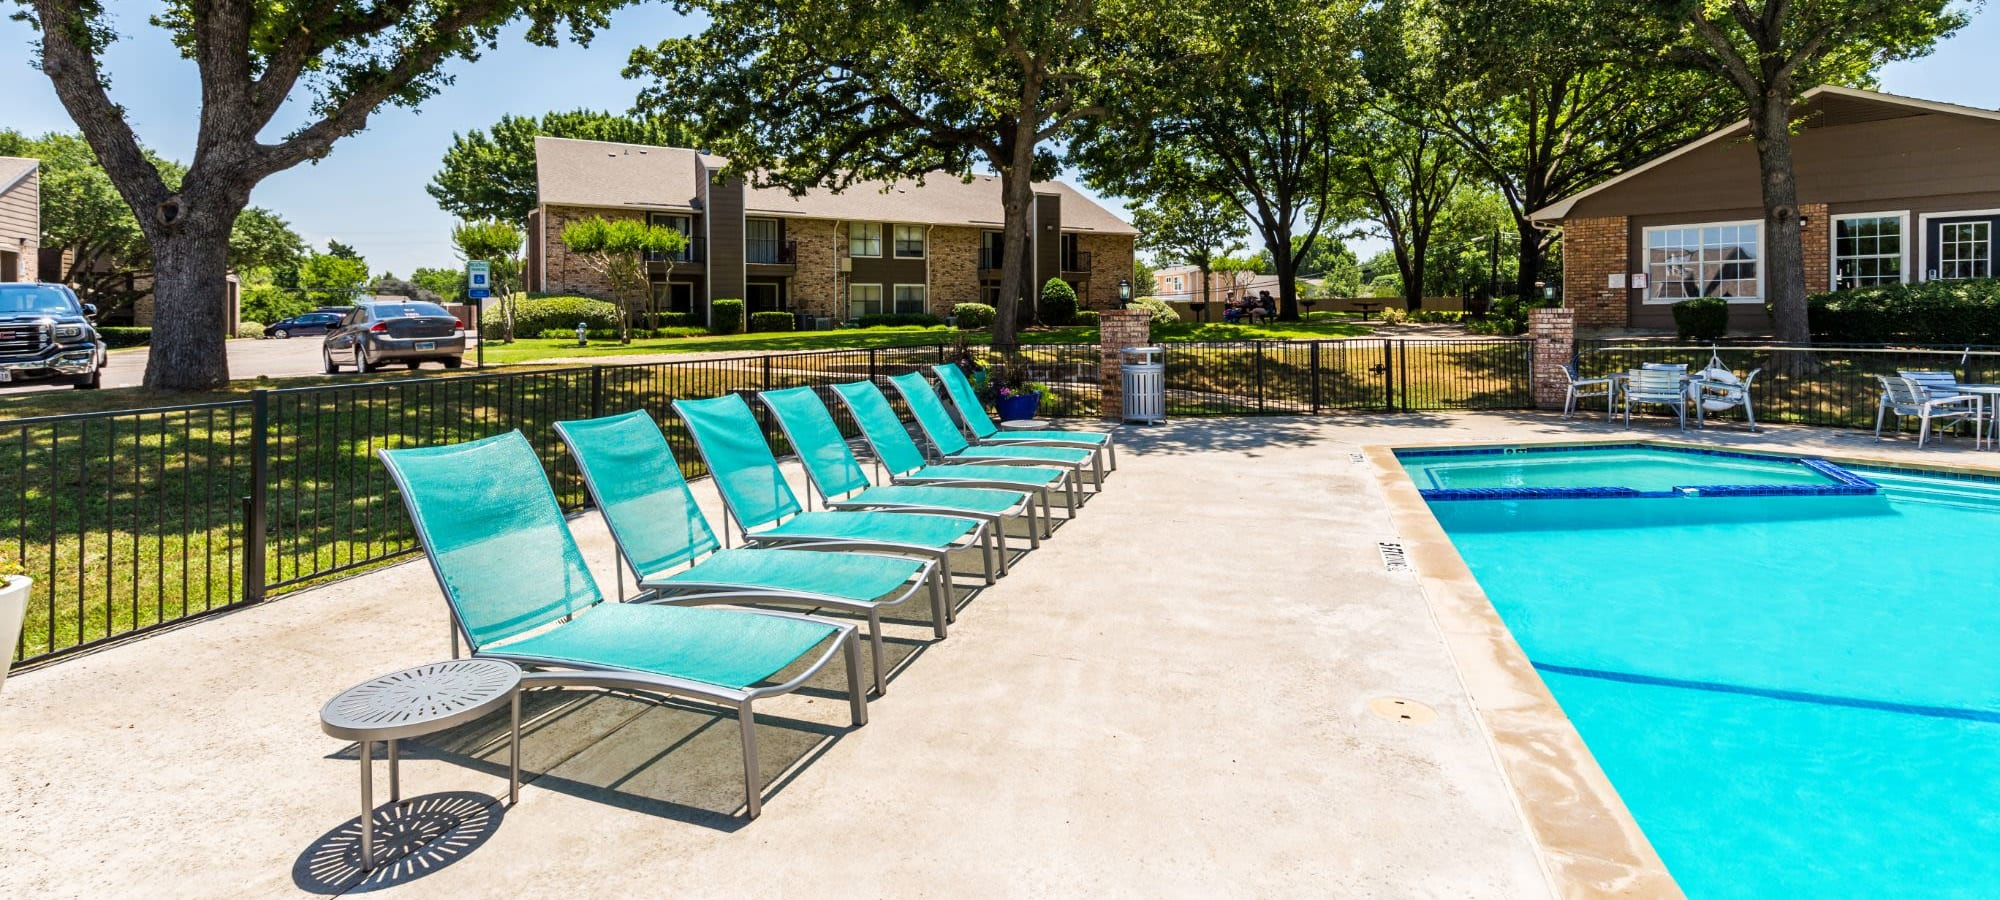 Amenities at The Park at Flower Mound in Flower Mound, Texas